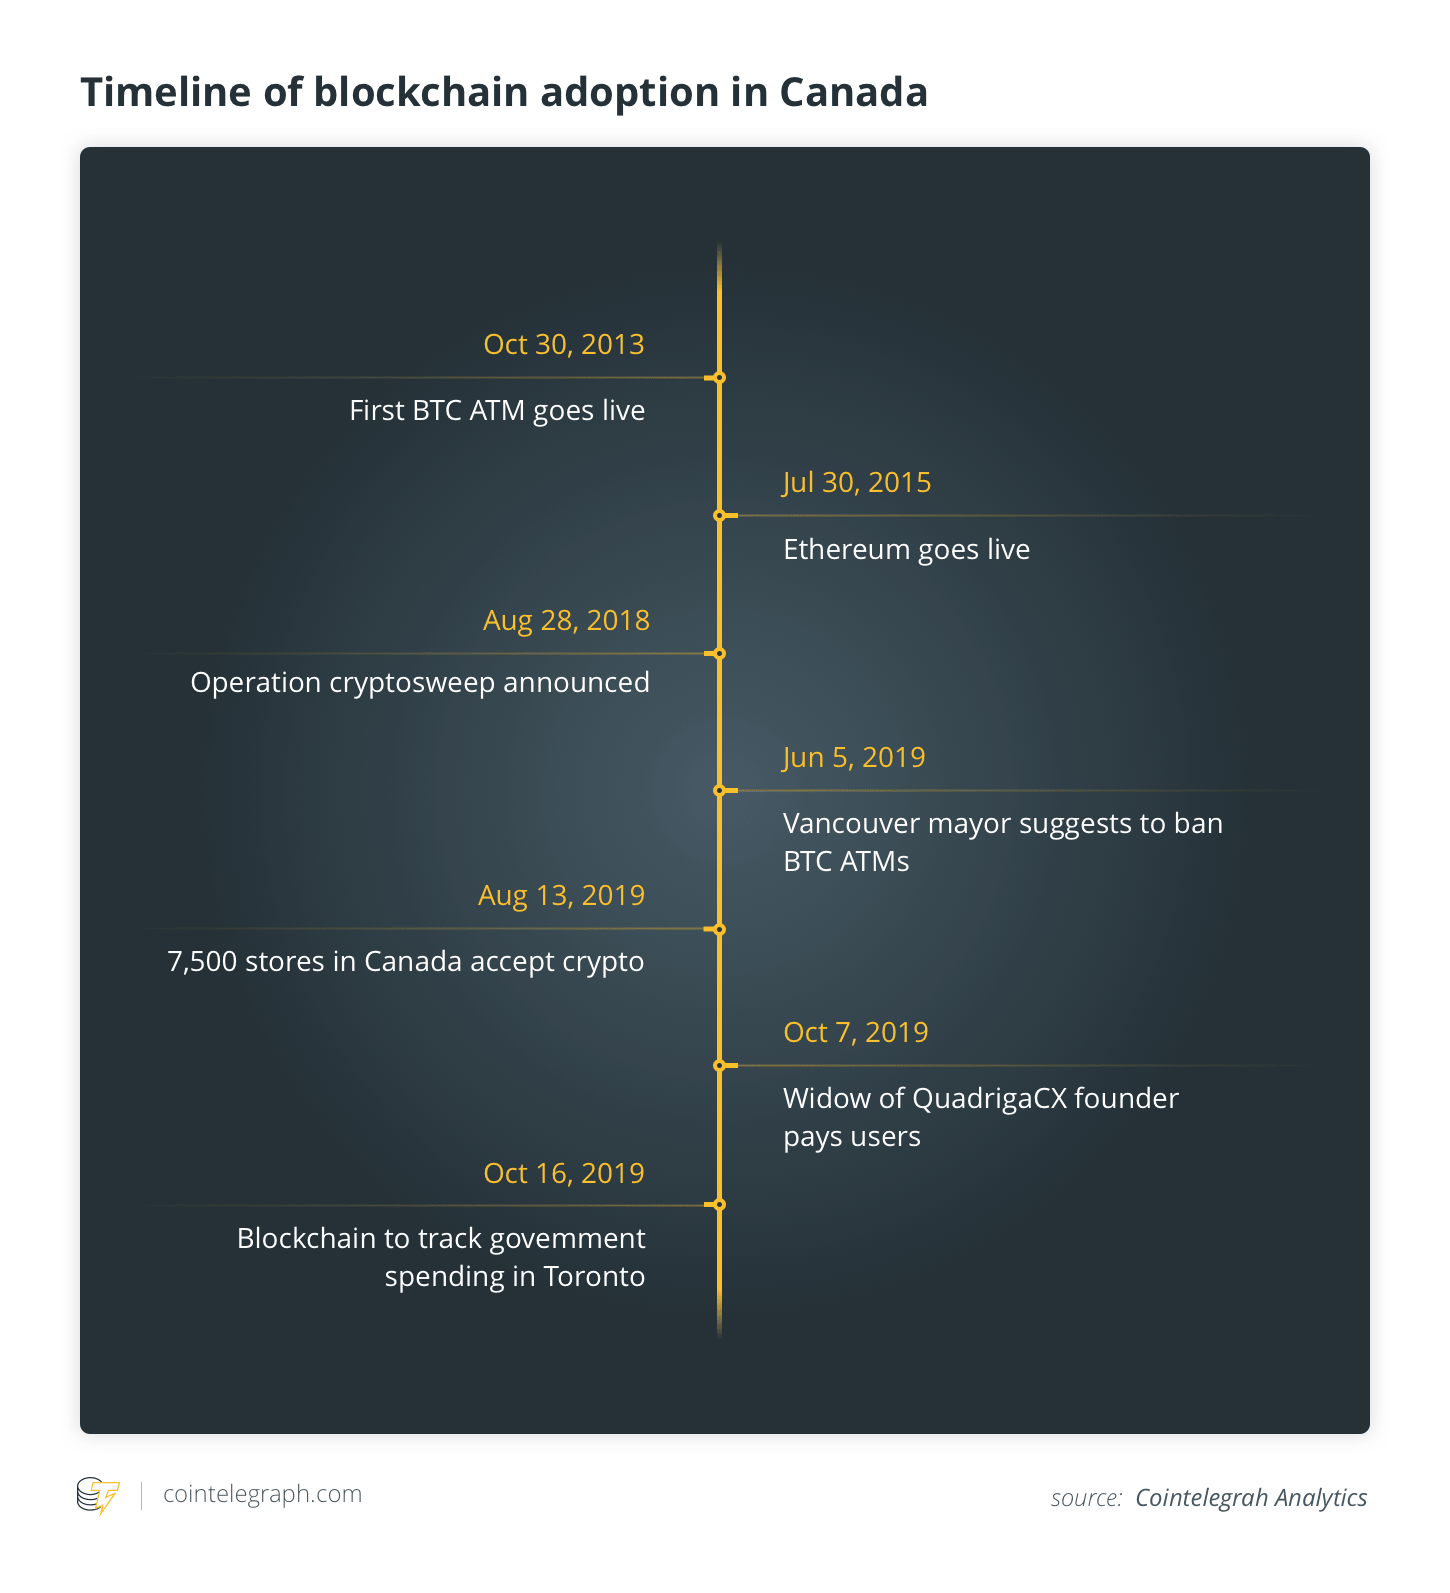 Timeline of blockchain adoption in Canada